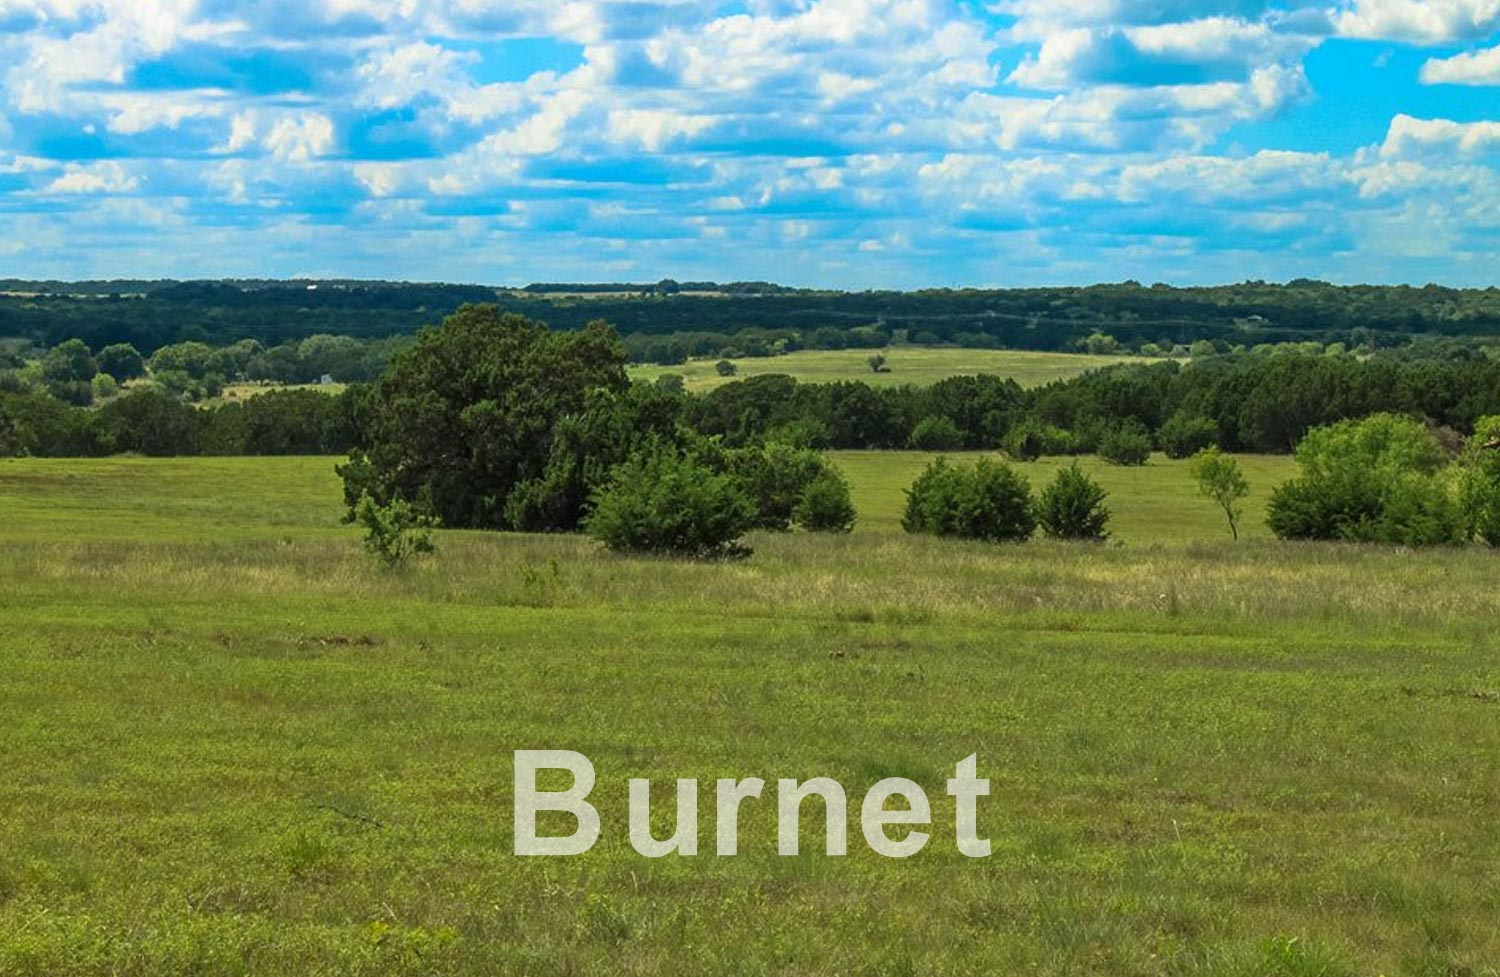 Home builders in Burnet TX